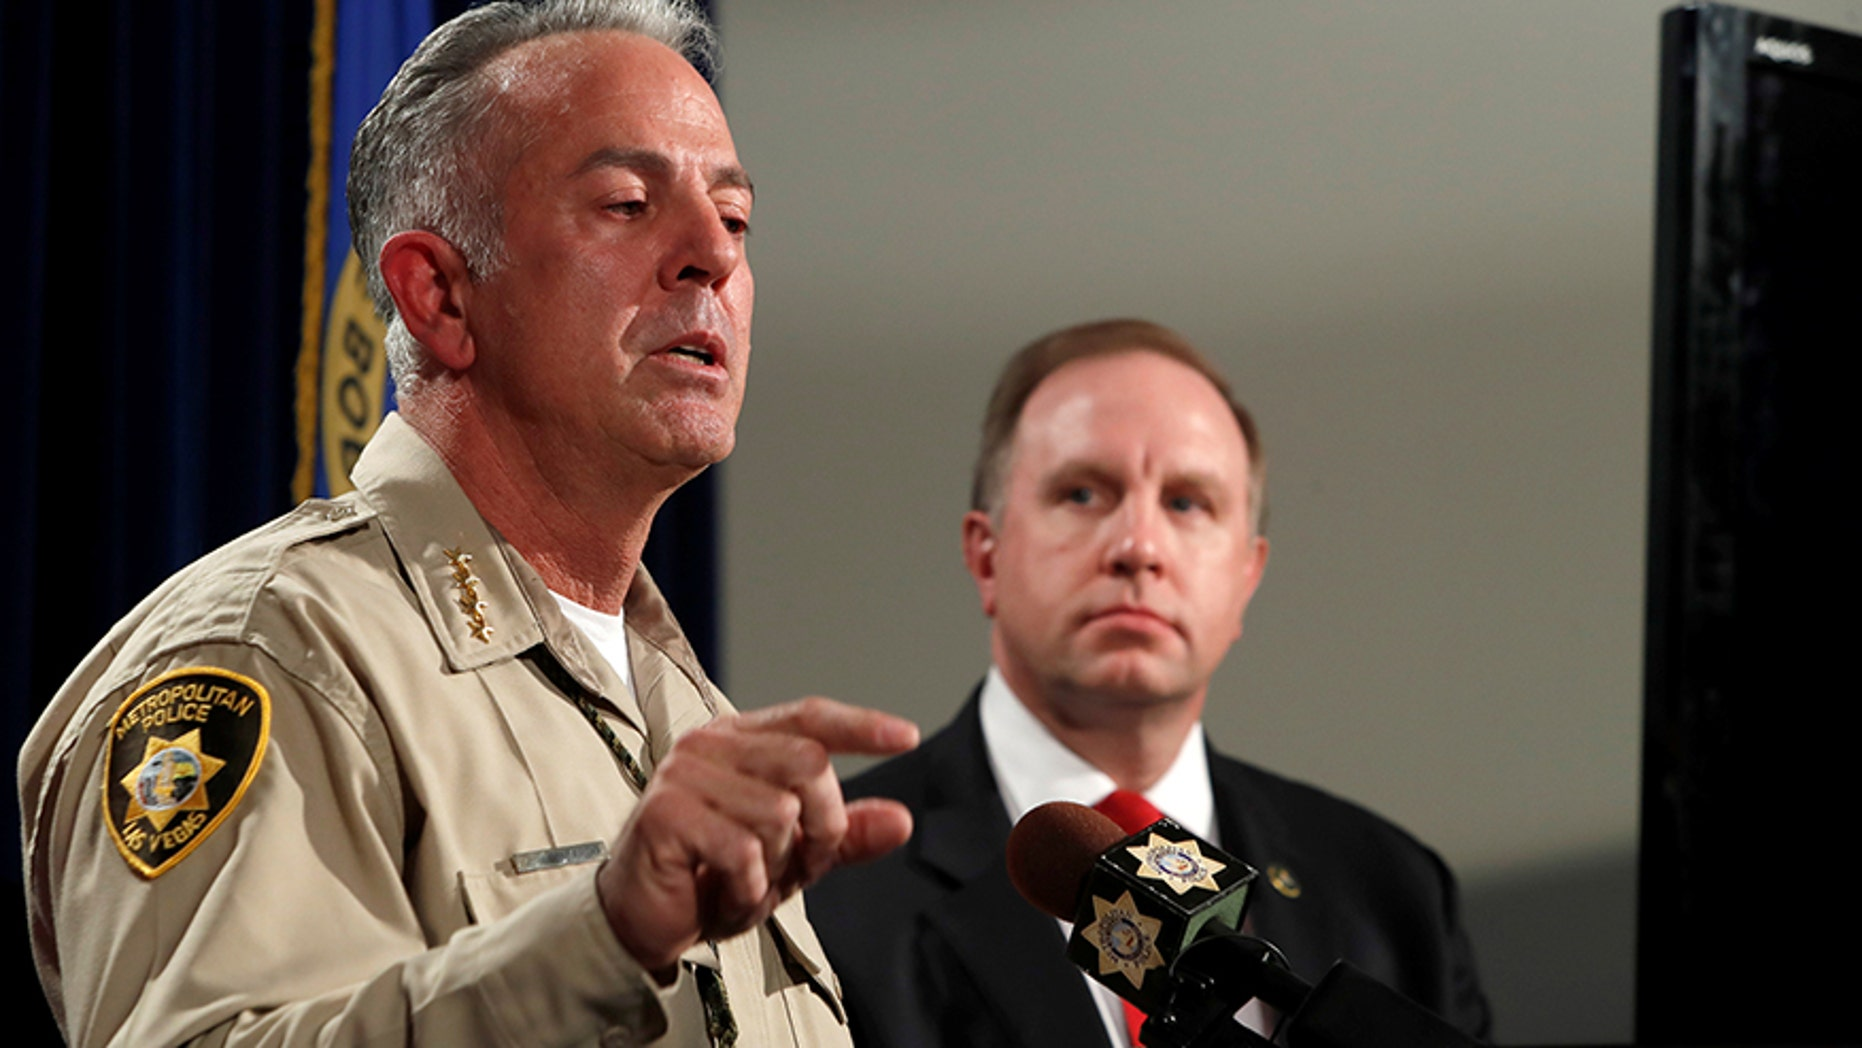 Oct. 3, 2017: Clark County Sheriff Joe Lombardo, left, responds to a question as Aaron Rouse, FBI Special Agent in Charge of the Las Vegas Division, looks on during a media briefing at the Las Vegas Metro Police headquarters in Las Vegas, Nev.